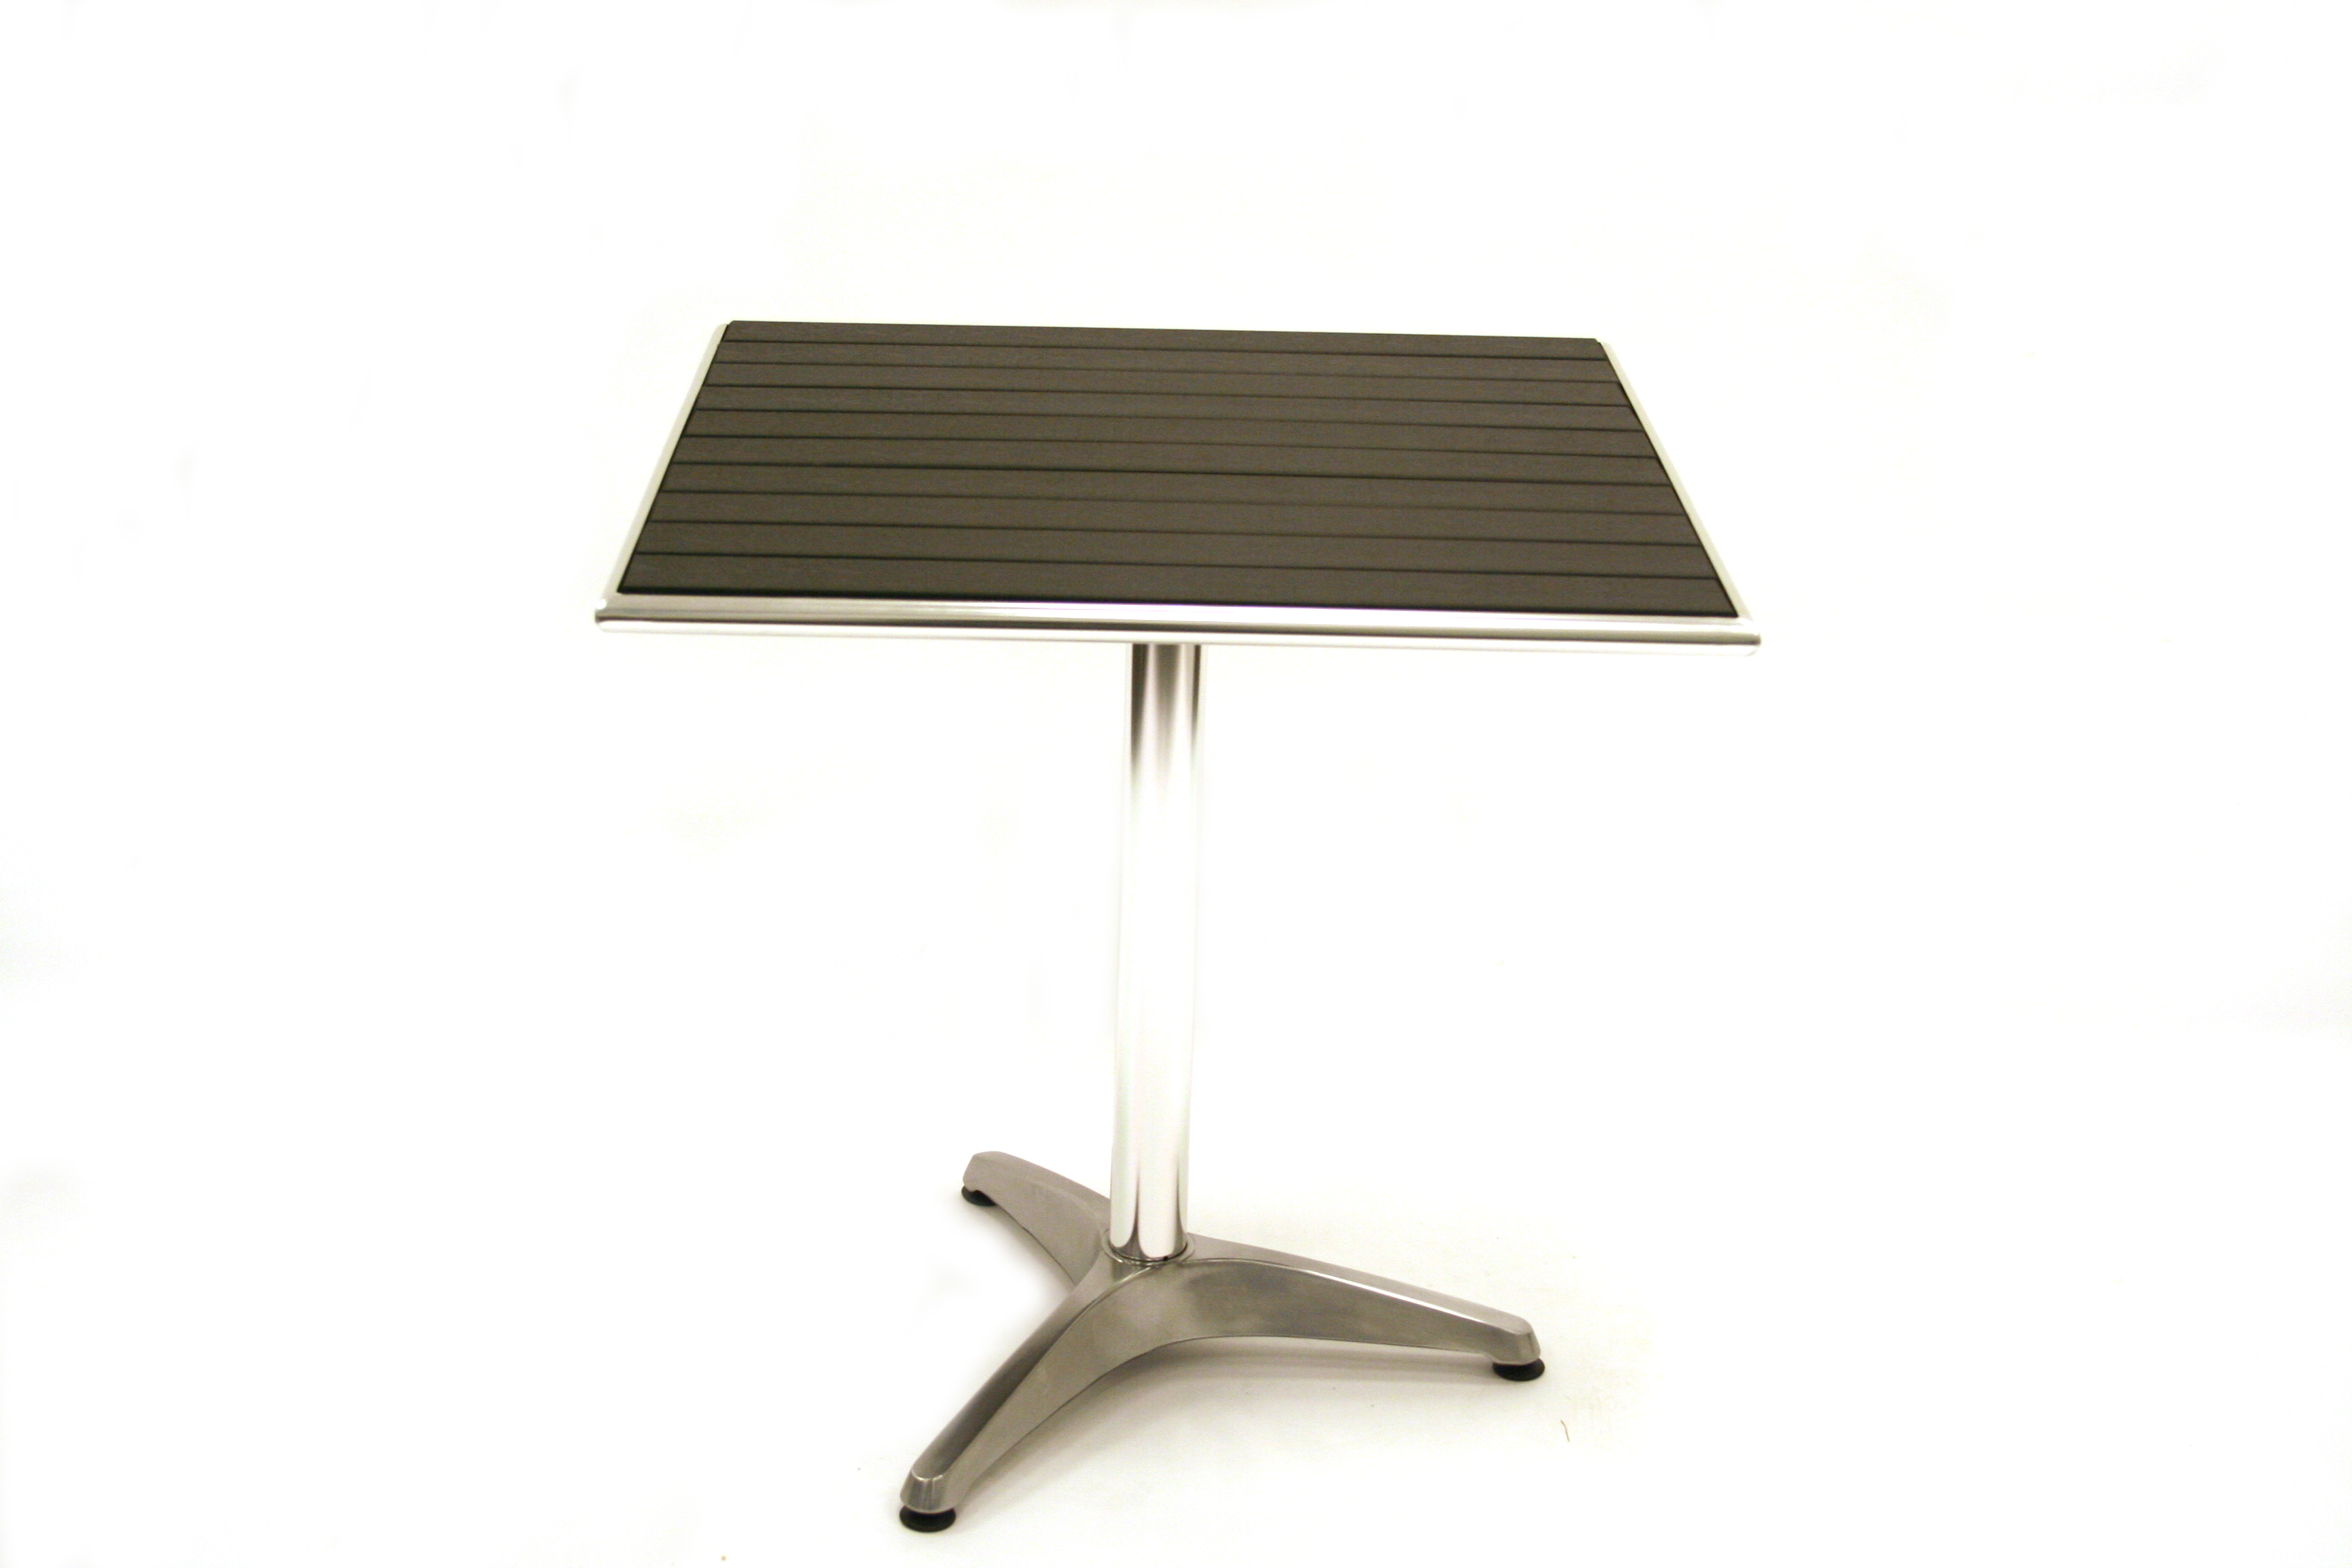 Black weatherproof Durawood Table Garden Patio furniture - BE Event Hire